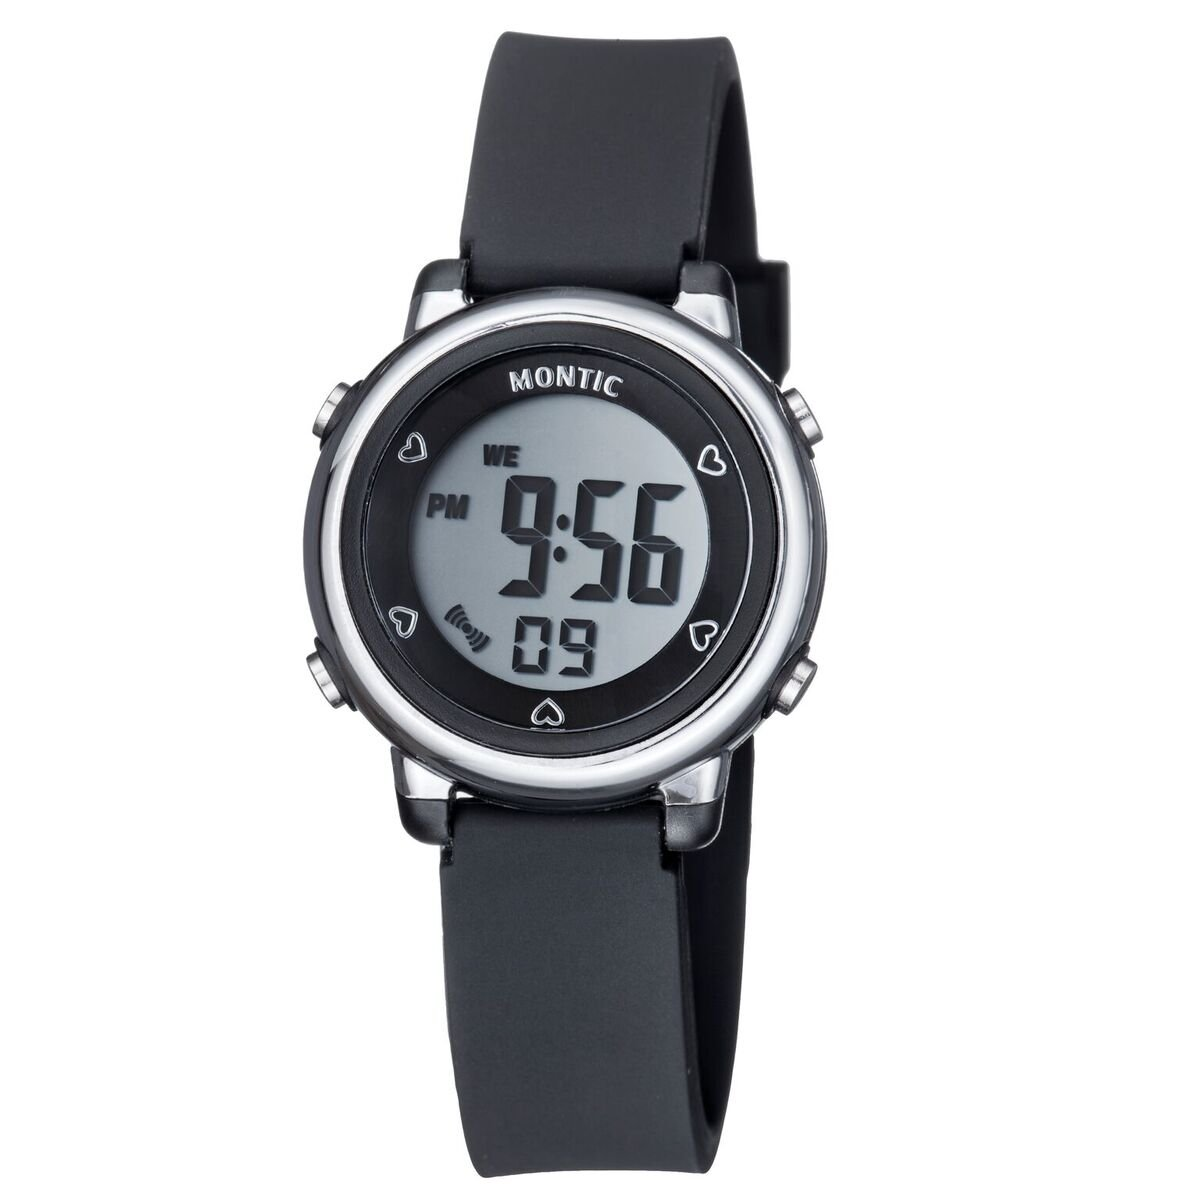 Black Digital Watch, Casual Sports Multi function with Alarm and Stopwatch Water Resistant Montic Watch by Montic